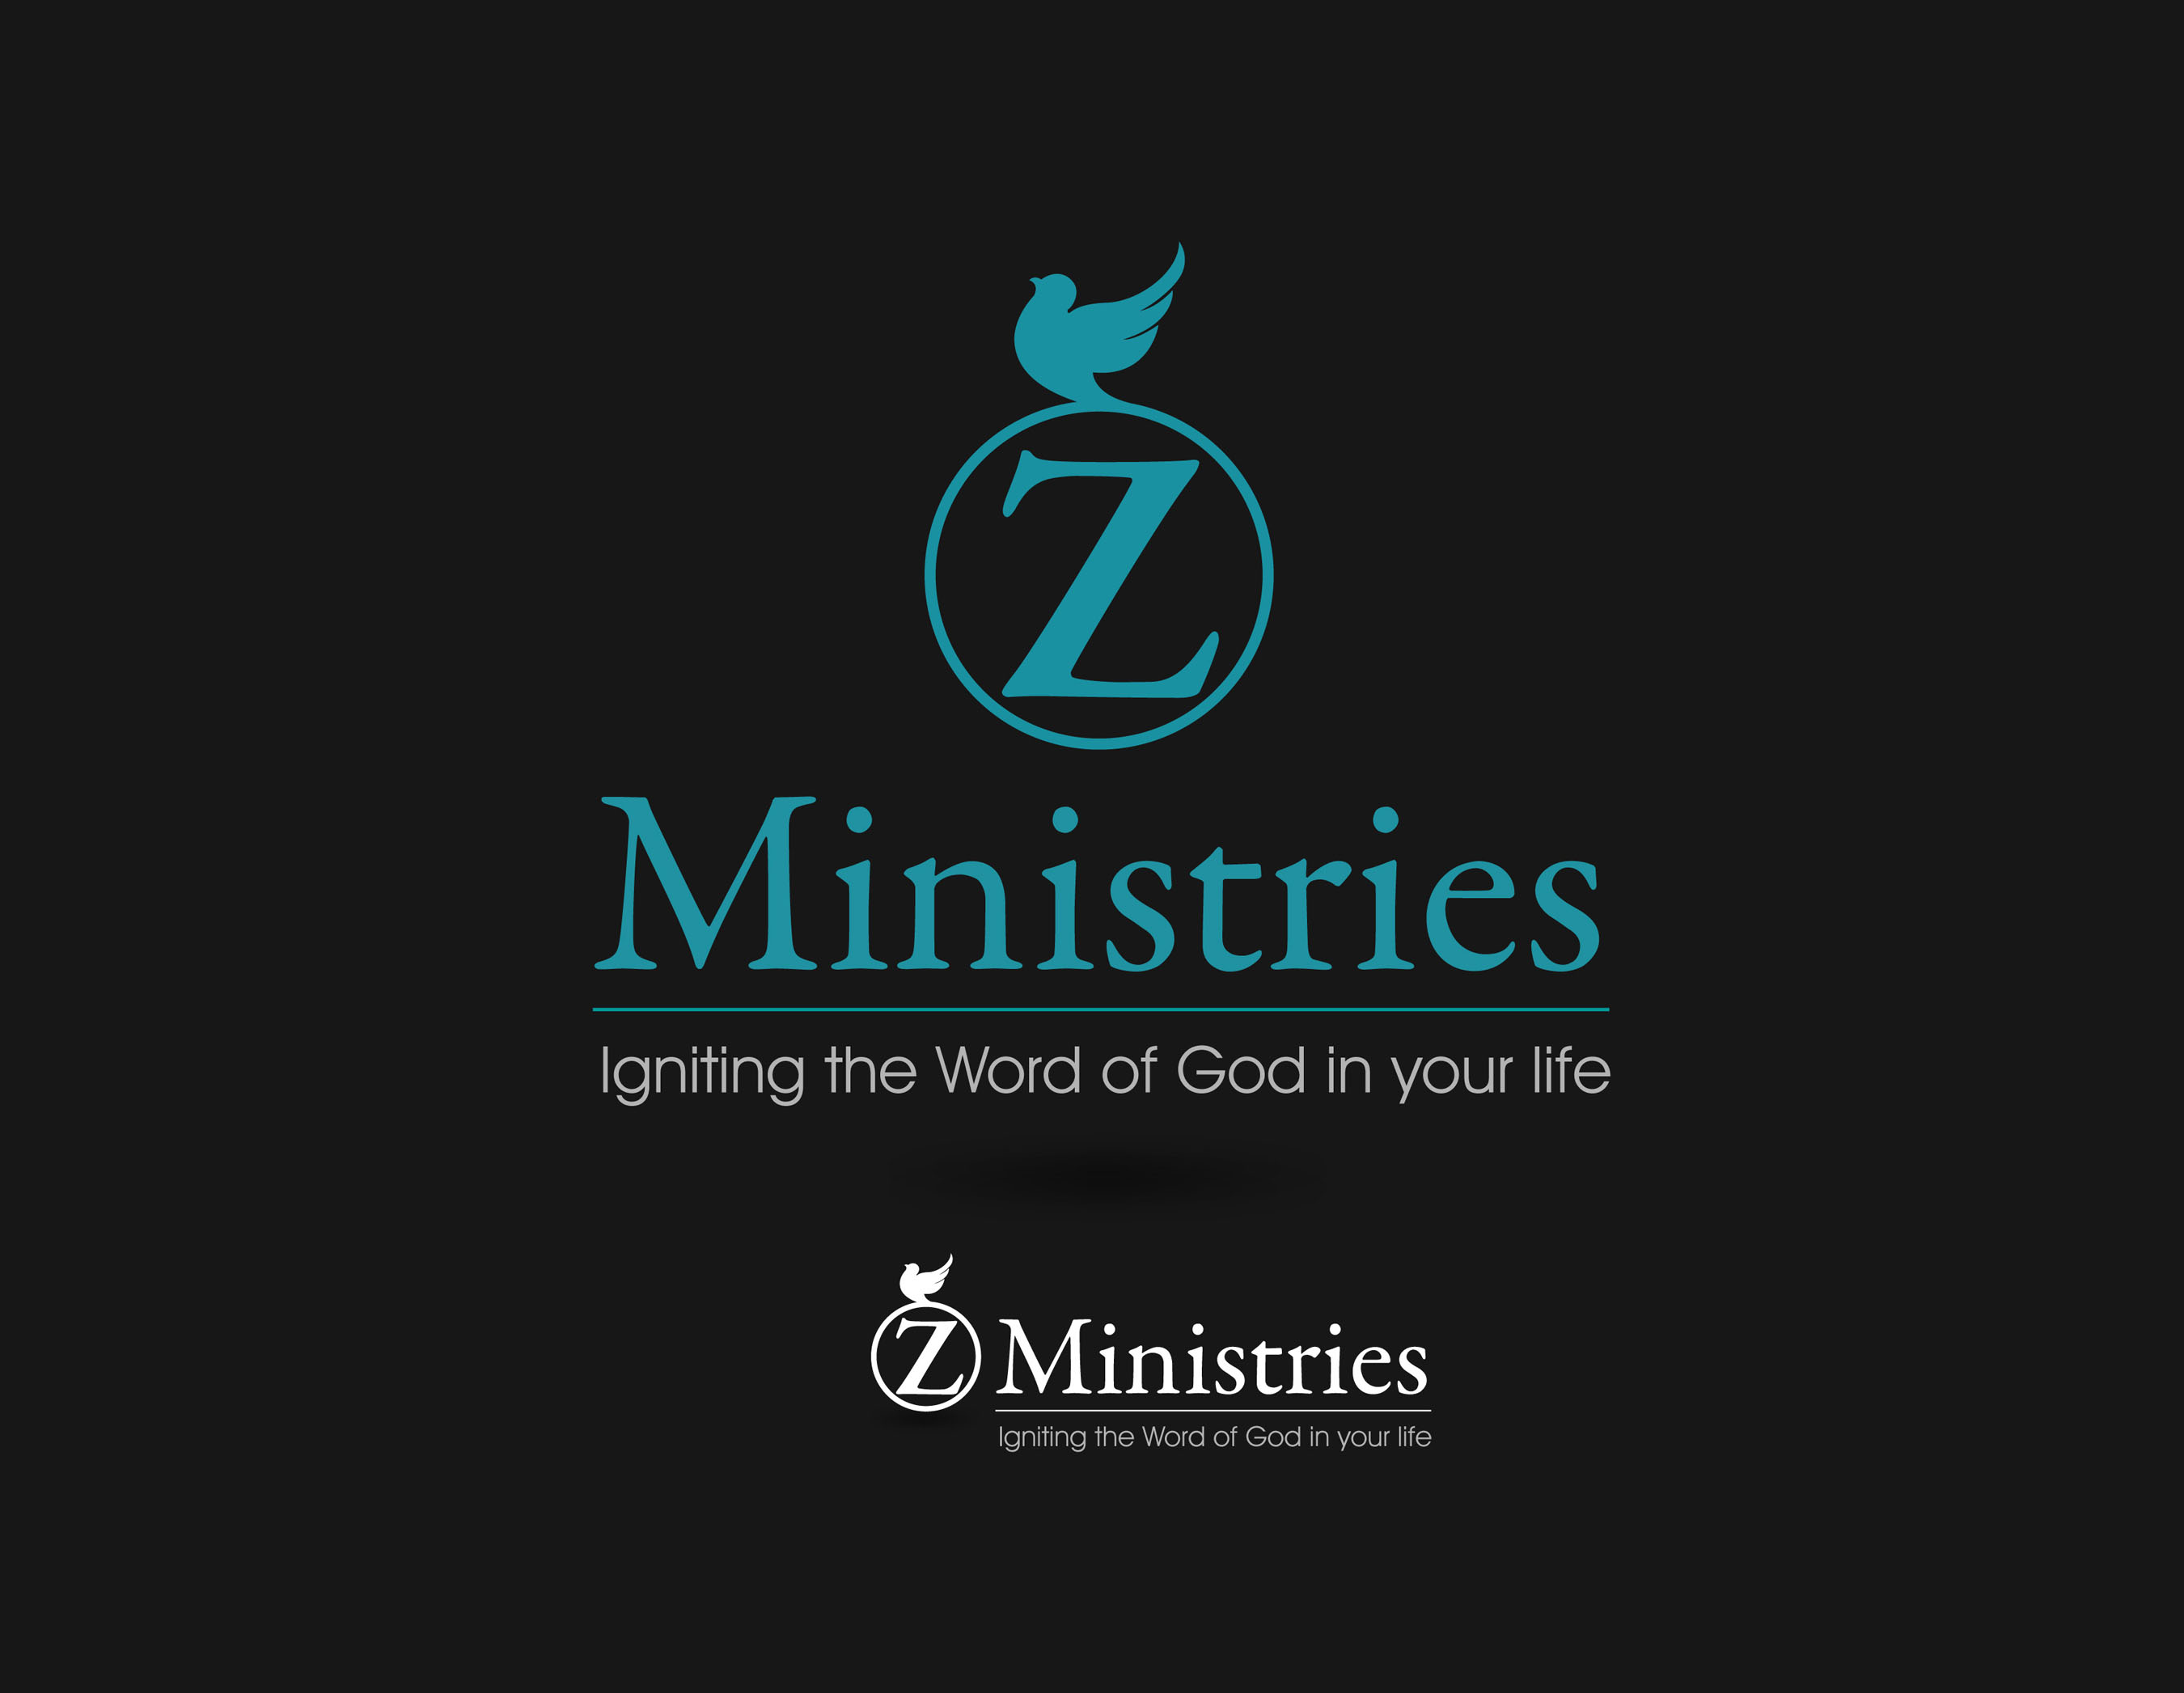 Logo Design by Mark Anthony Moreto Jordan - Entry No. 35 in the Logo Design Contest Artistic Logo Design for Z Ministries.